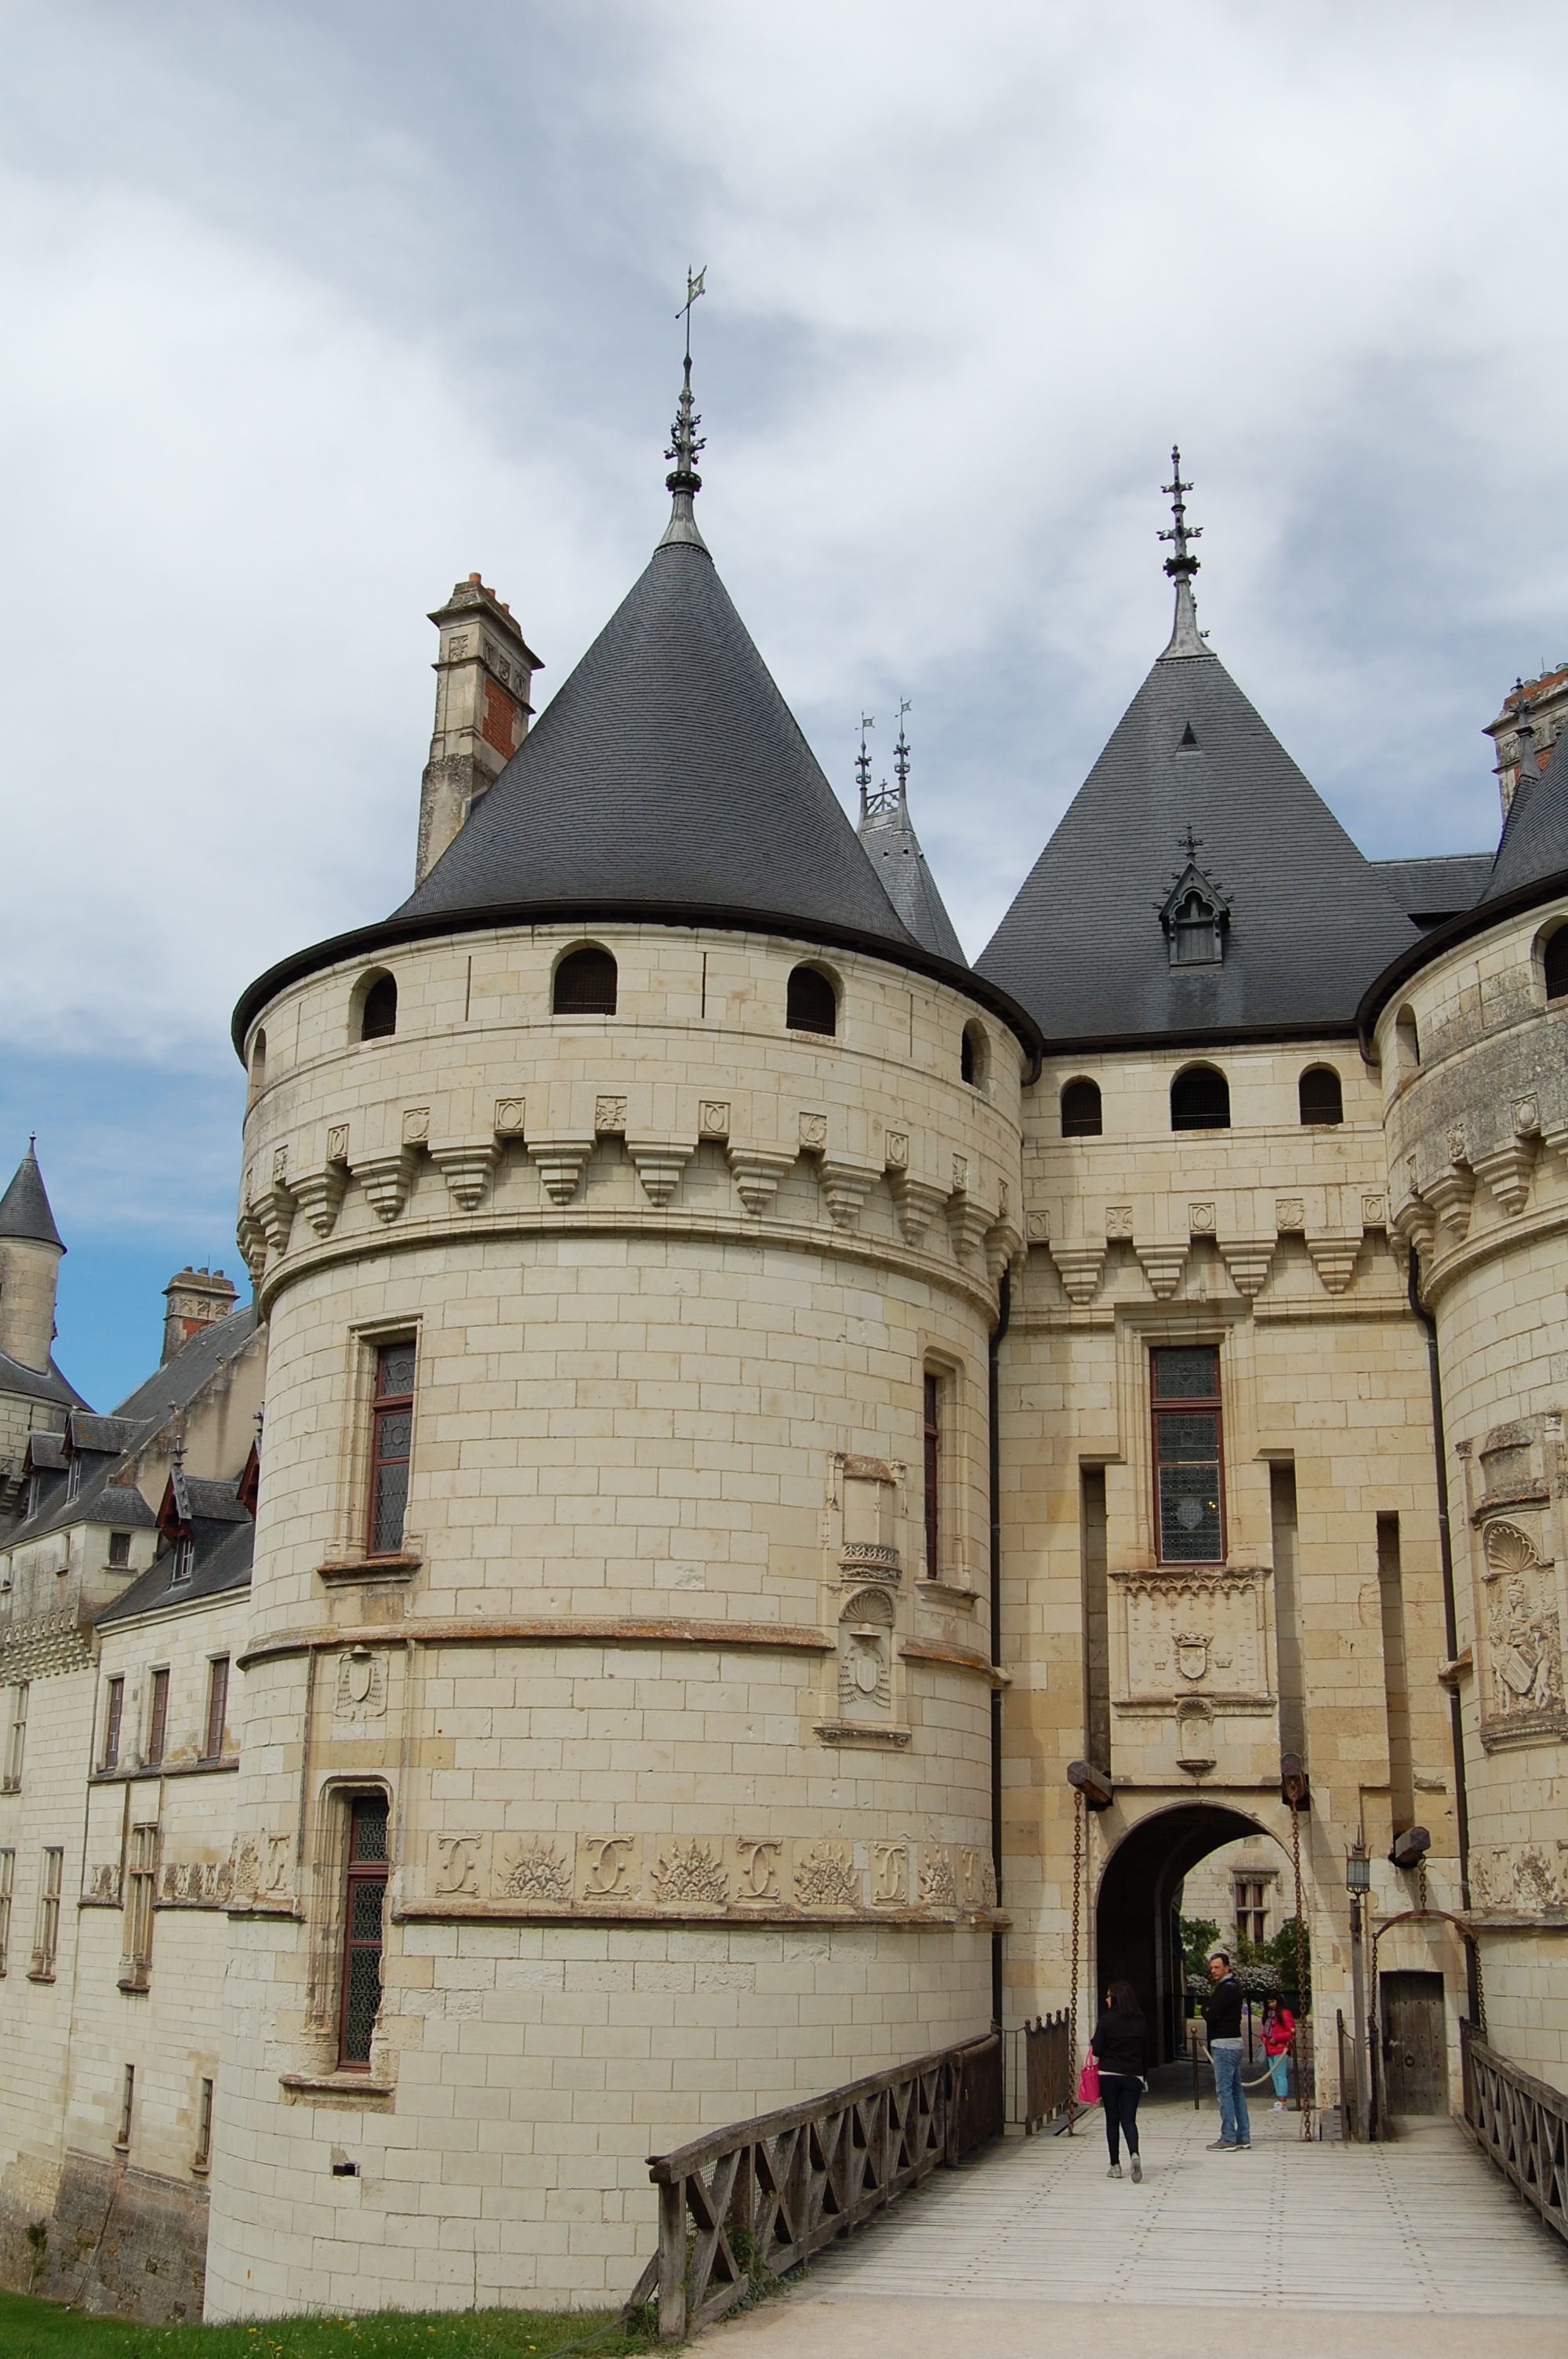 Exceptionnel Ignoring 'No Entry' Signs at Chateau de Chaumont – gardeninacity QF14